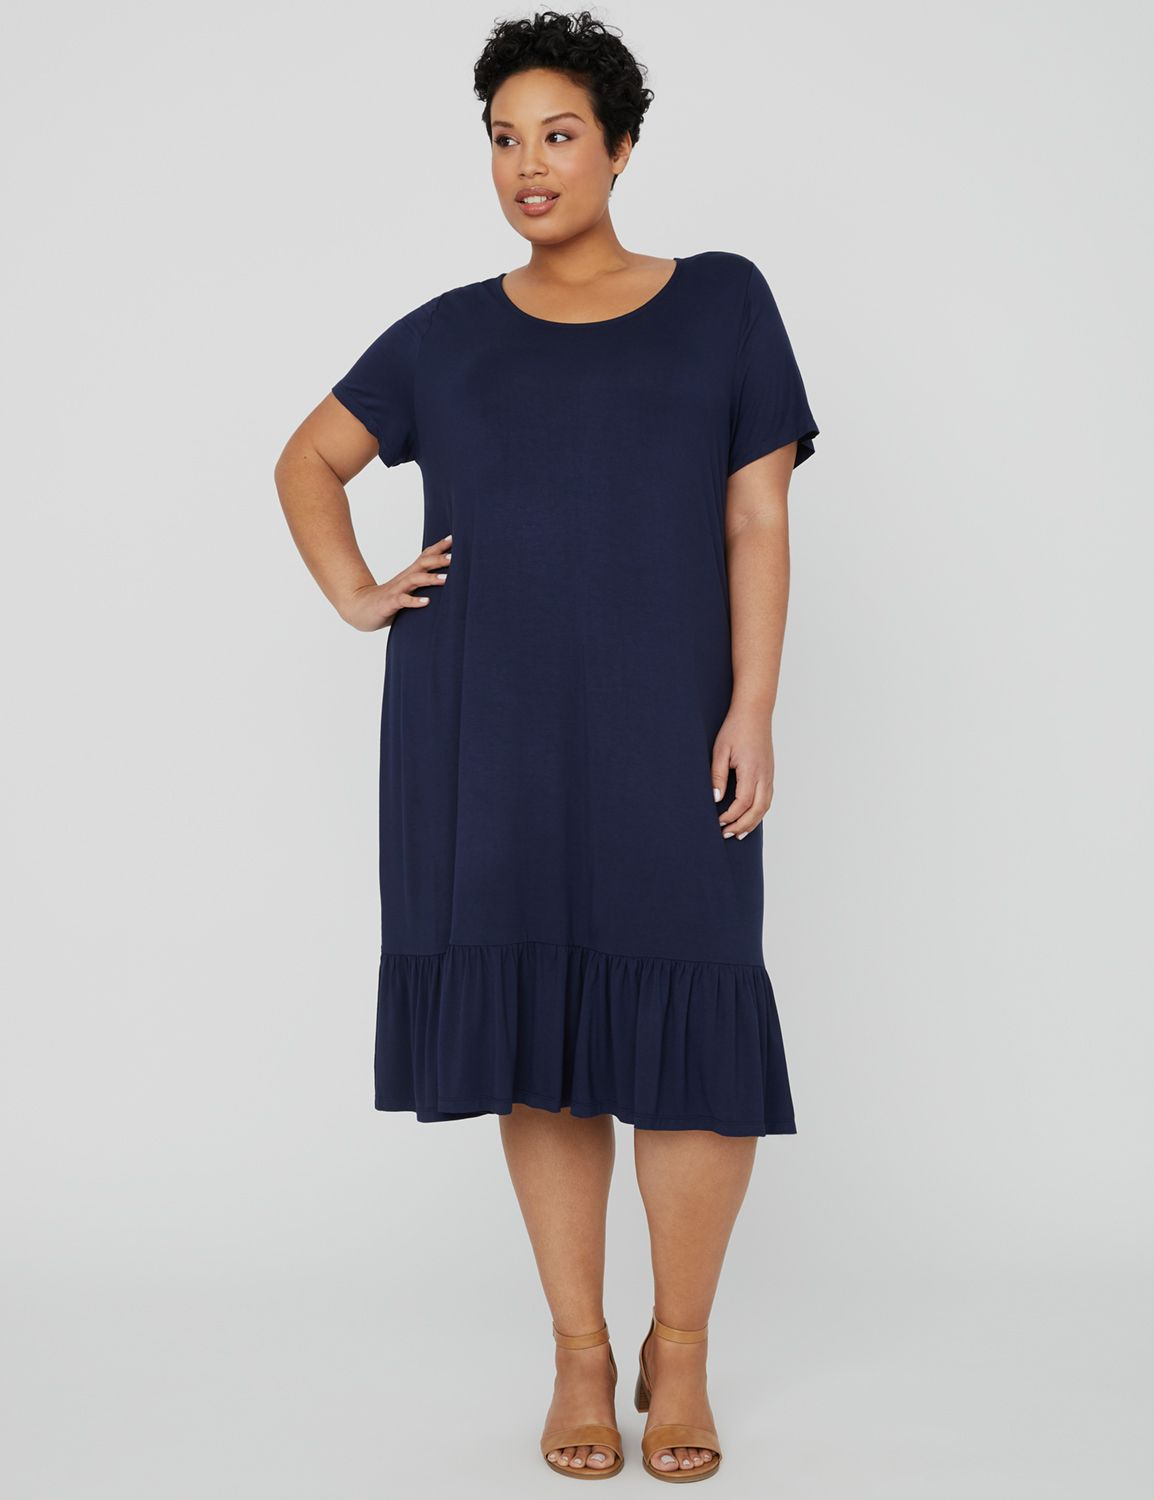 Exhale T-Shirt A-Line Dress 1090955 T-shirt Dress with Flounce MP-300102414